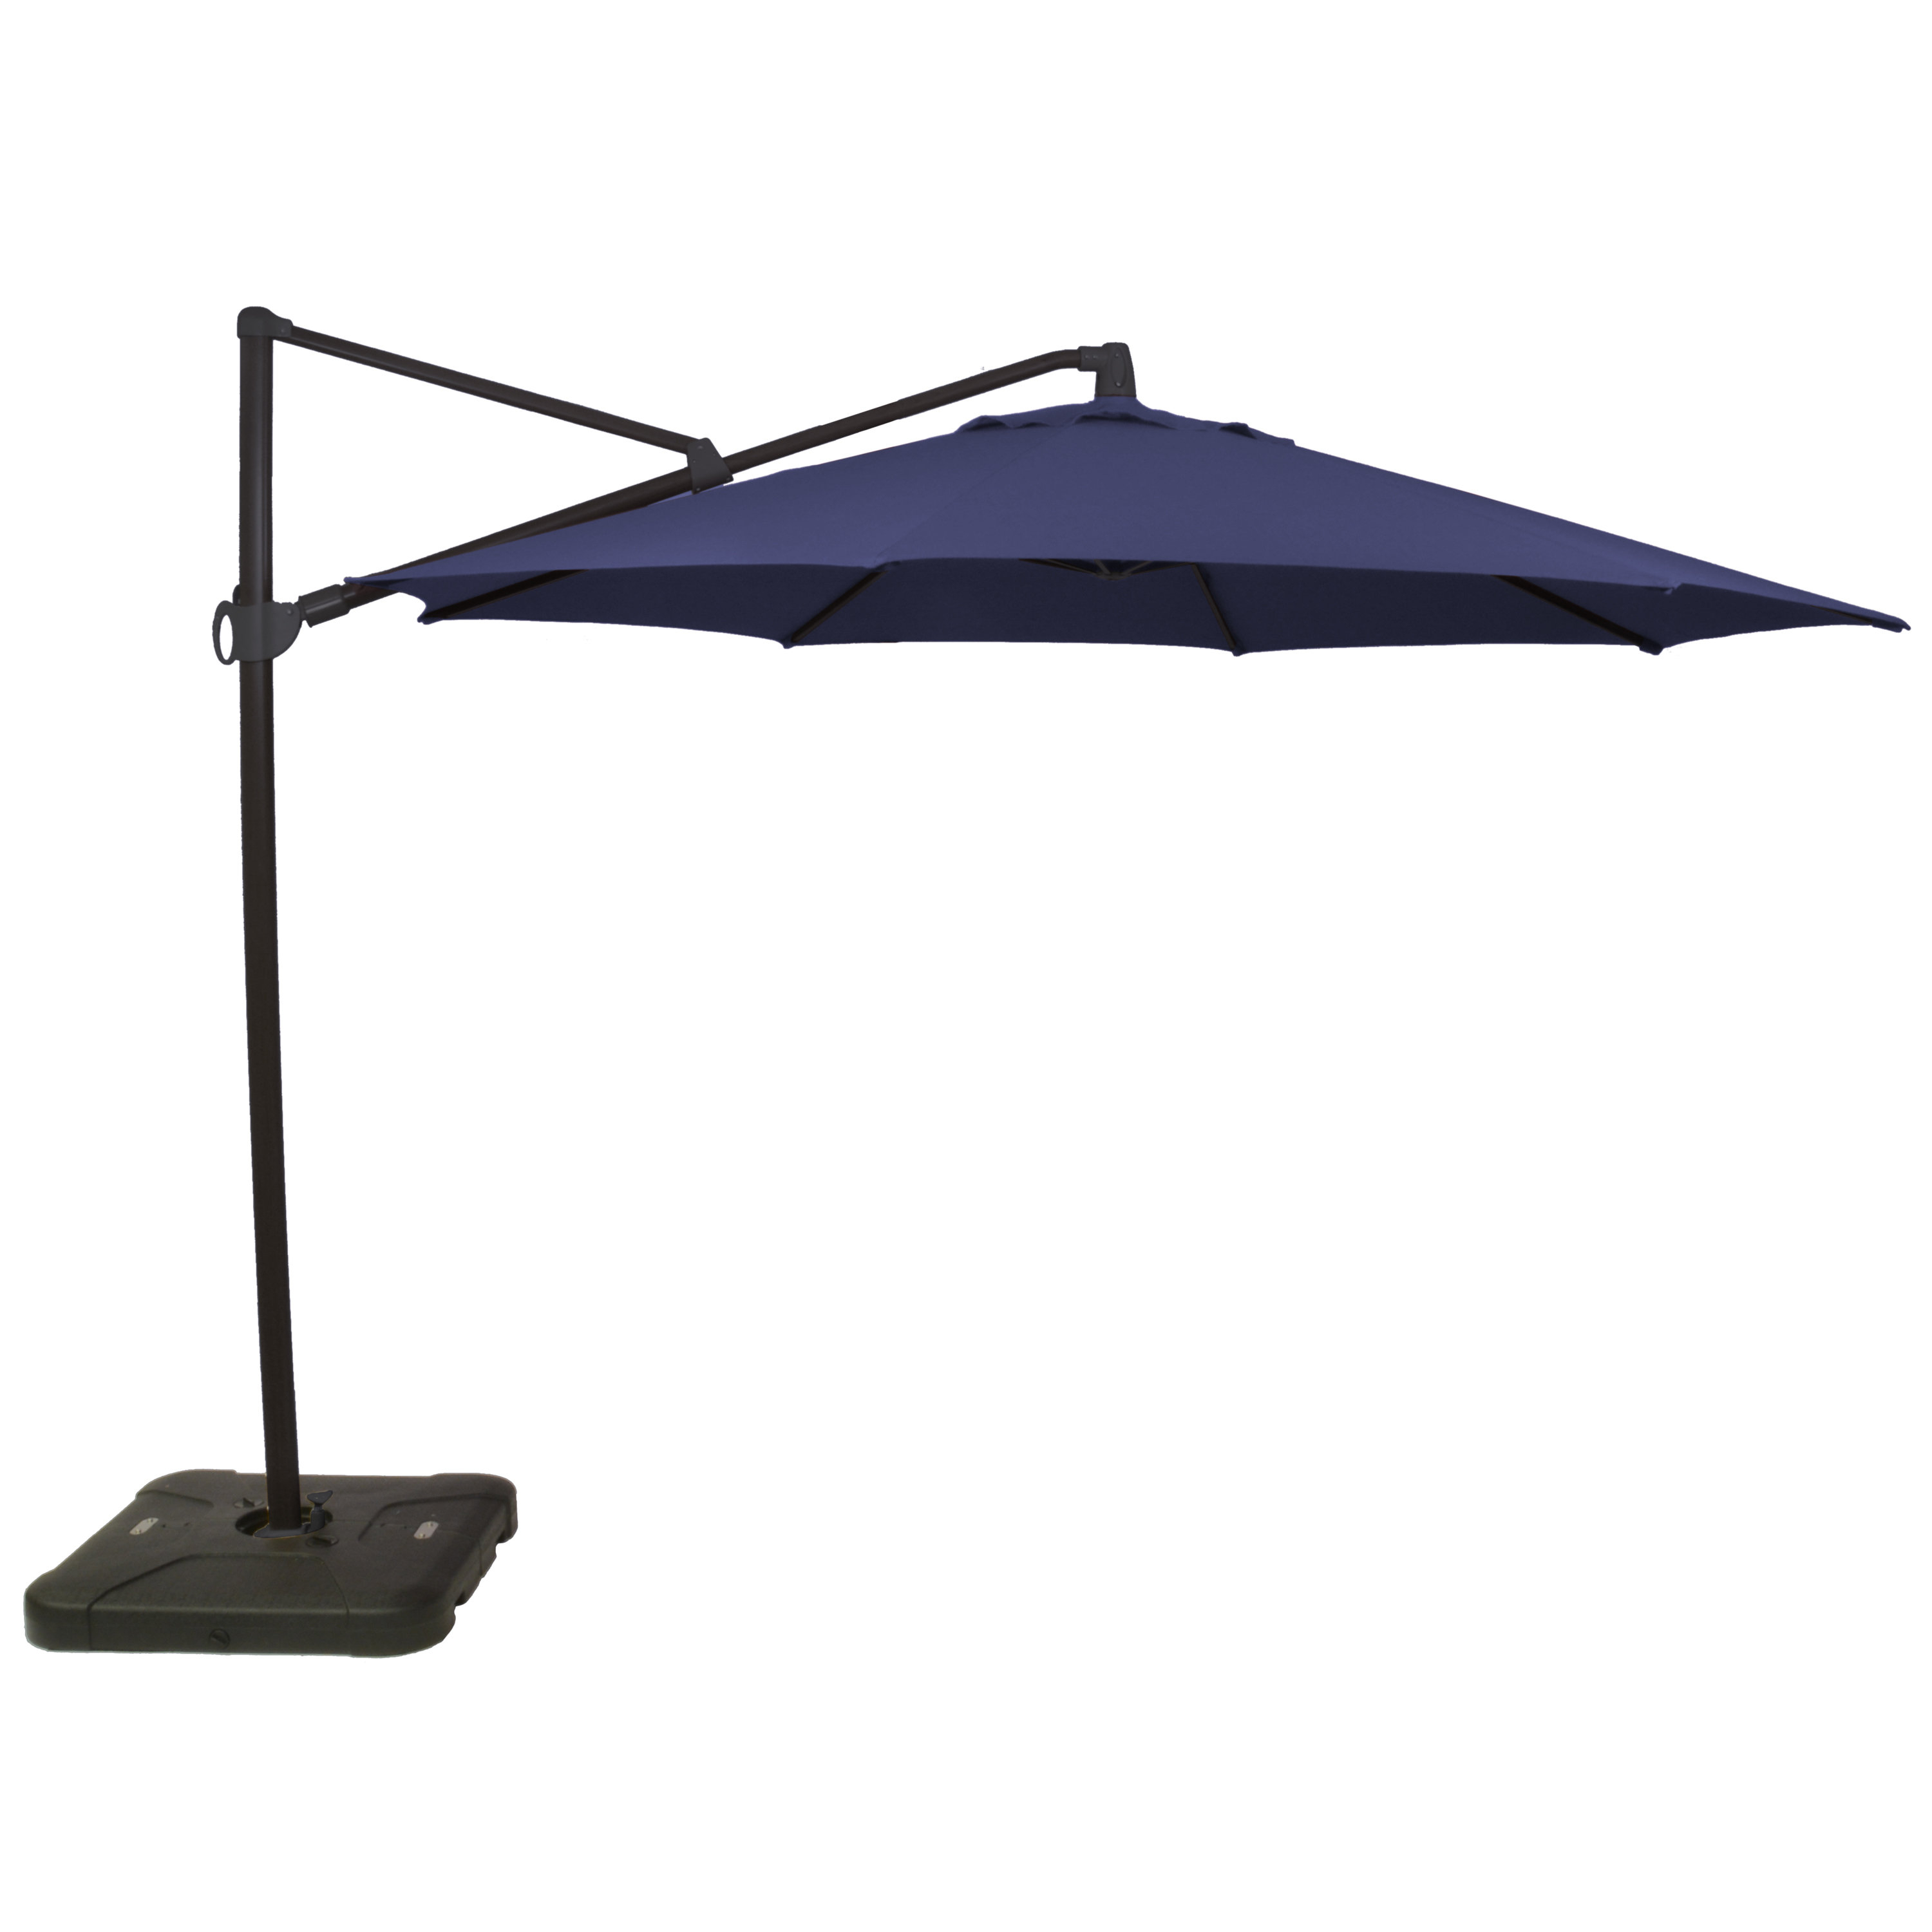 Fashionable Kedzie Outdoor Cantilever Umbrellas With Kedzie Outdoor 11' Cantilever Umbrella (View 1 of 20)